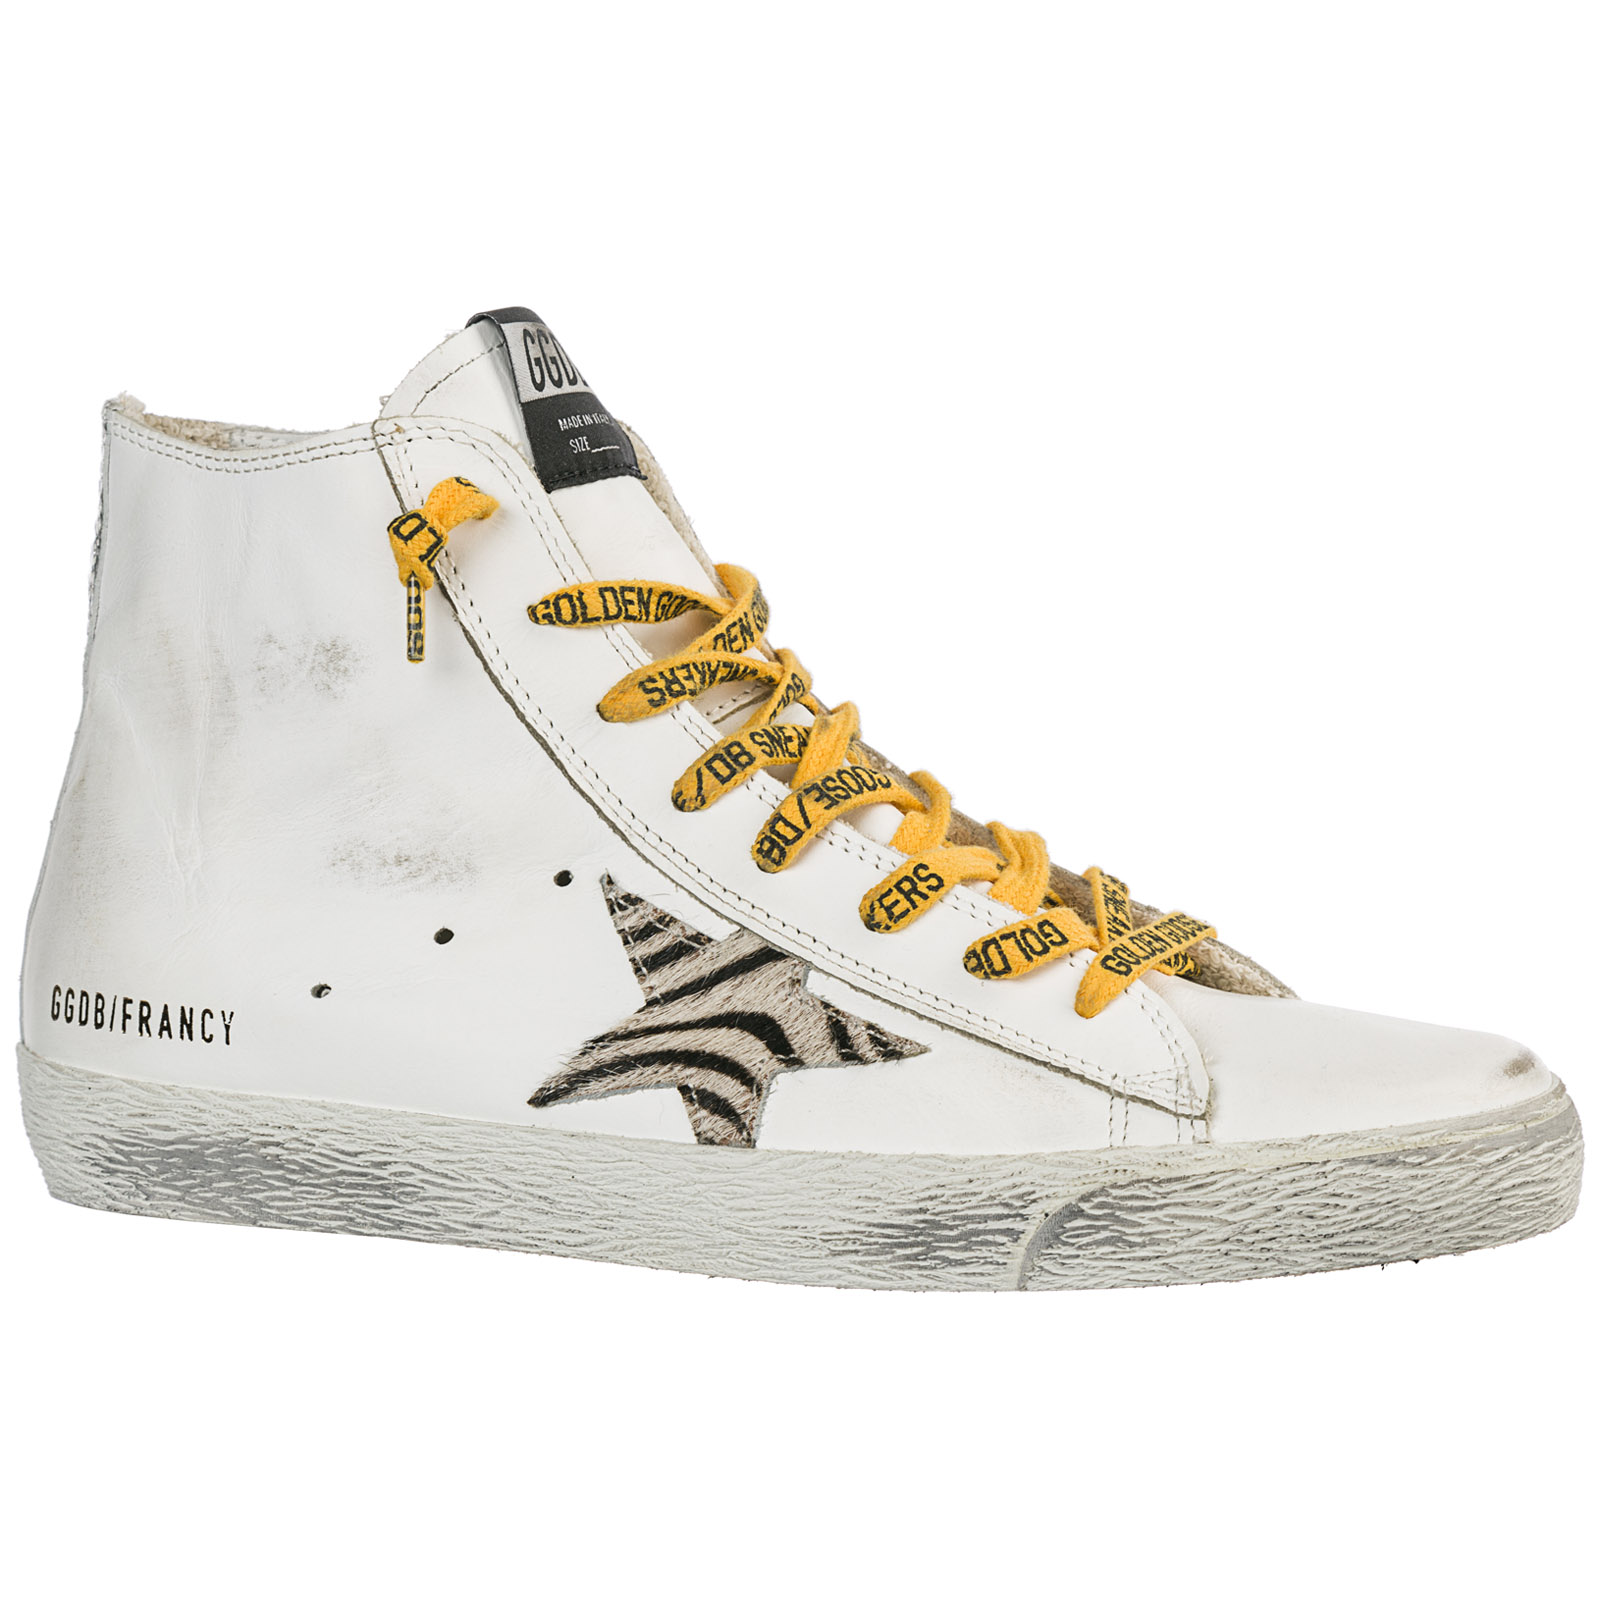 Sneakers alte Golden Goose Francy G34WS591B61 whtie leather - all ... dc5d3f02cdd